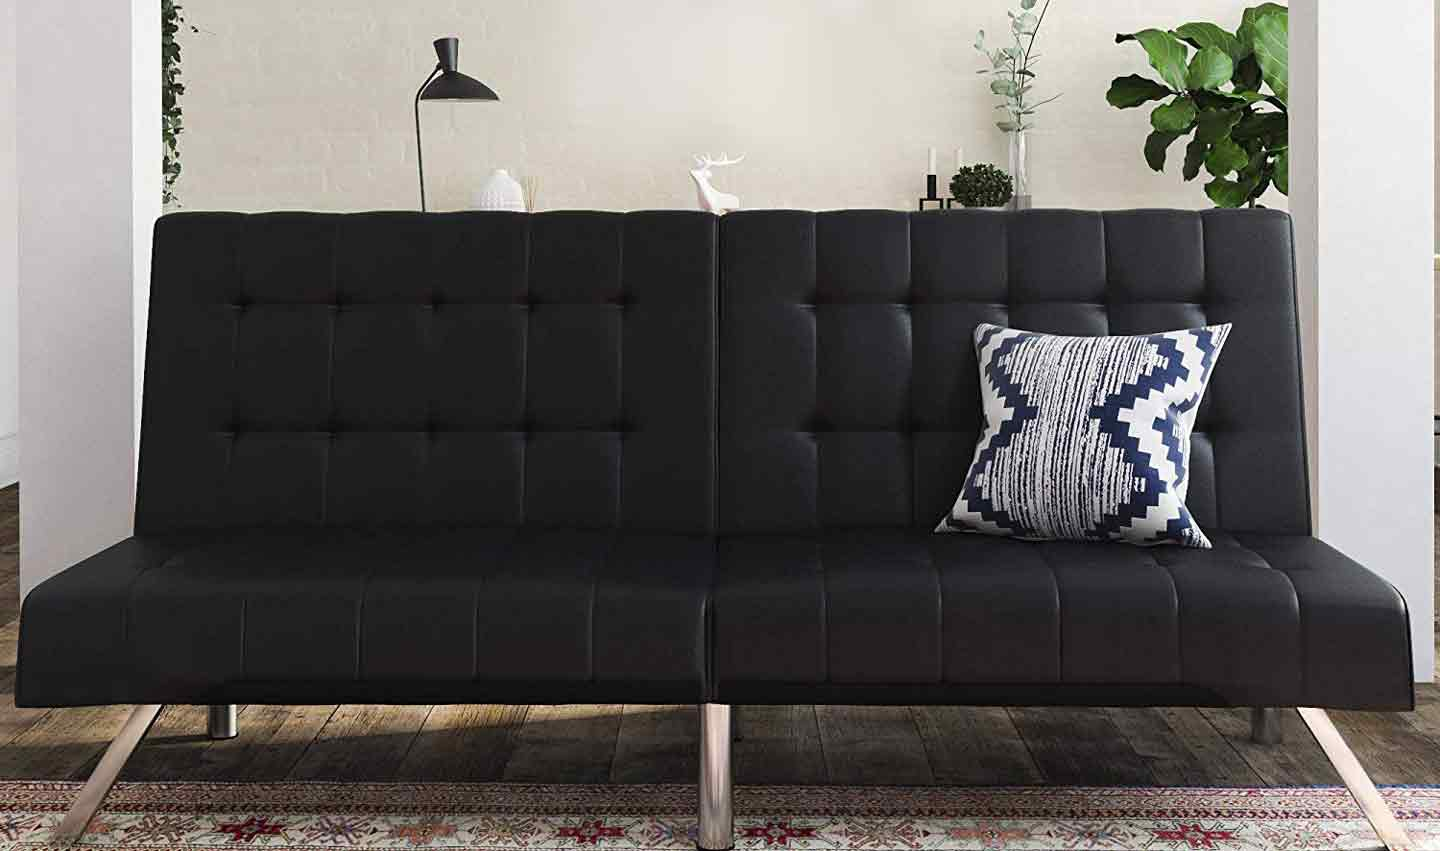 Top Rated 10 Most Comfortable Futon To In 2019